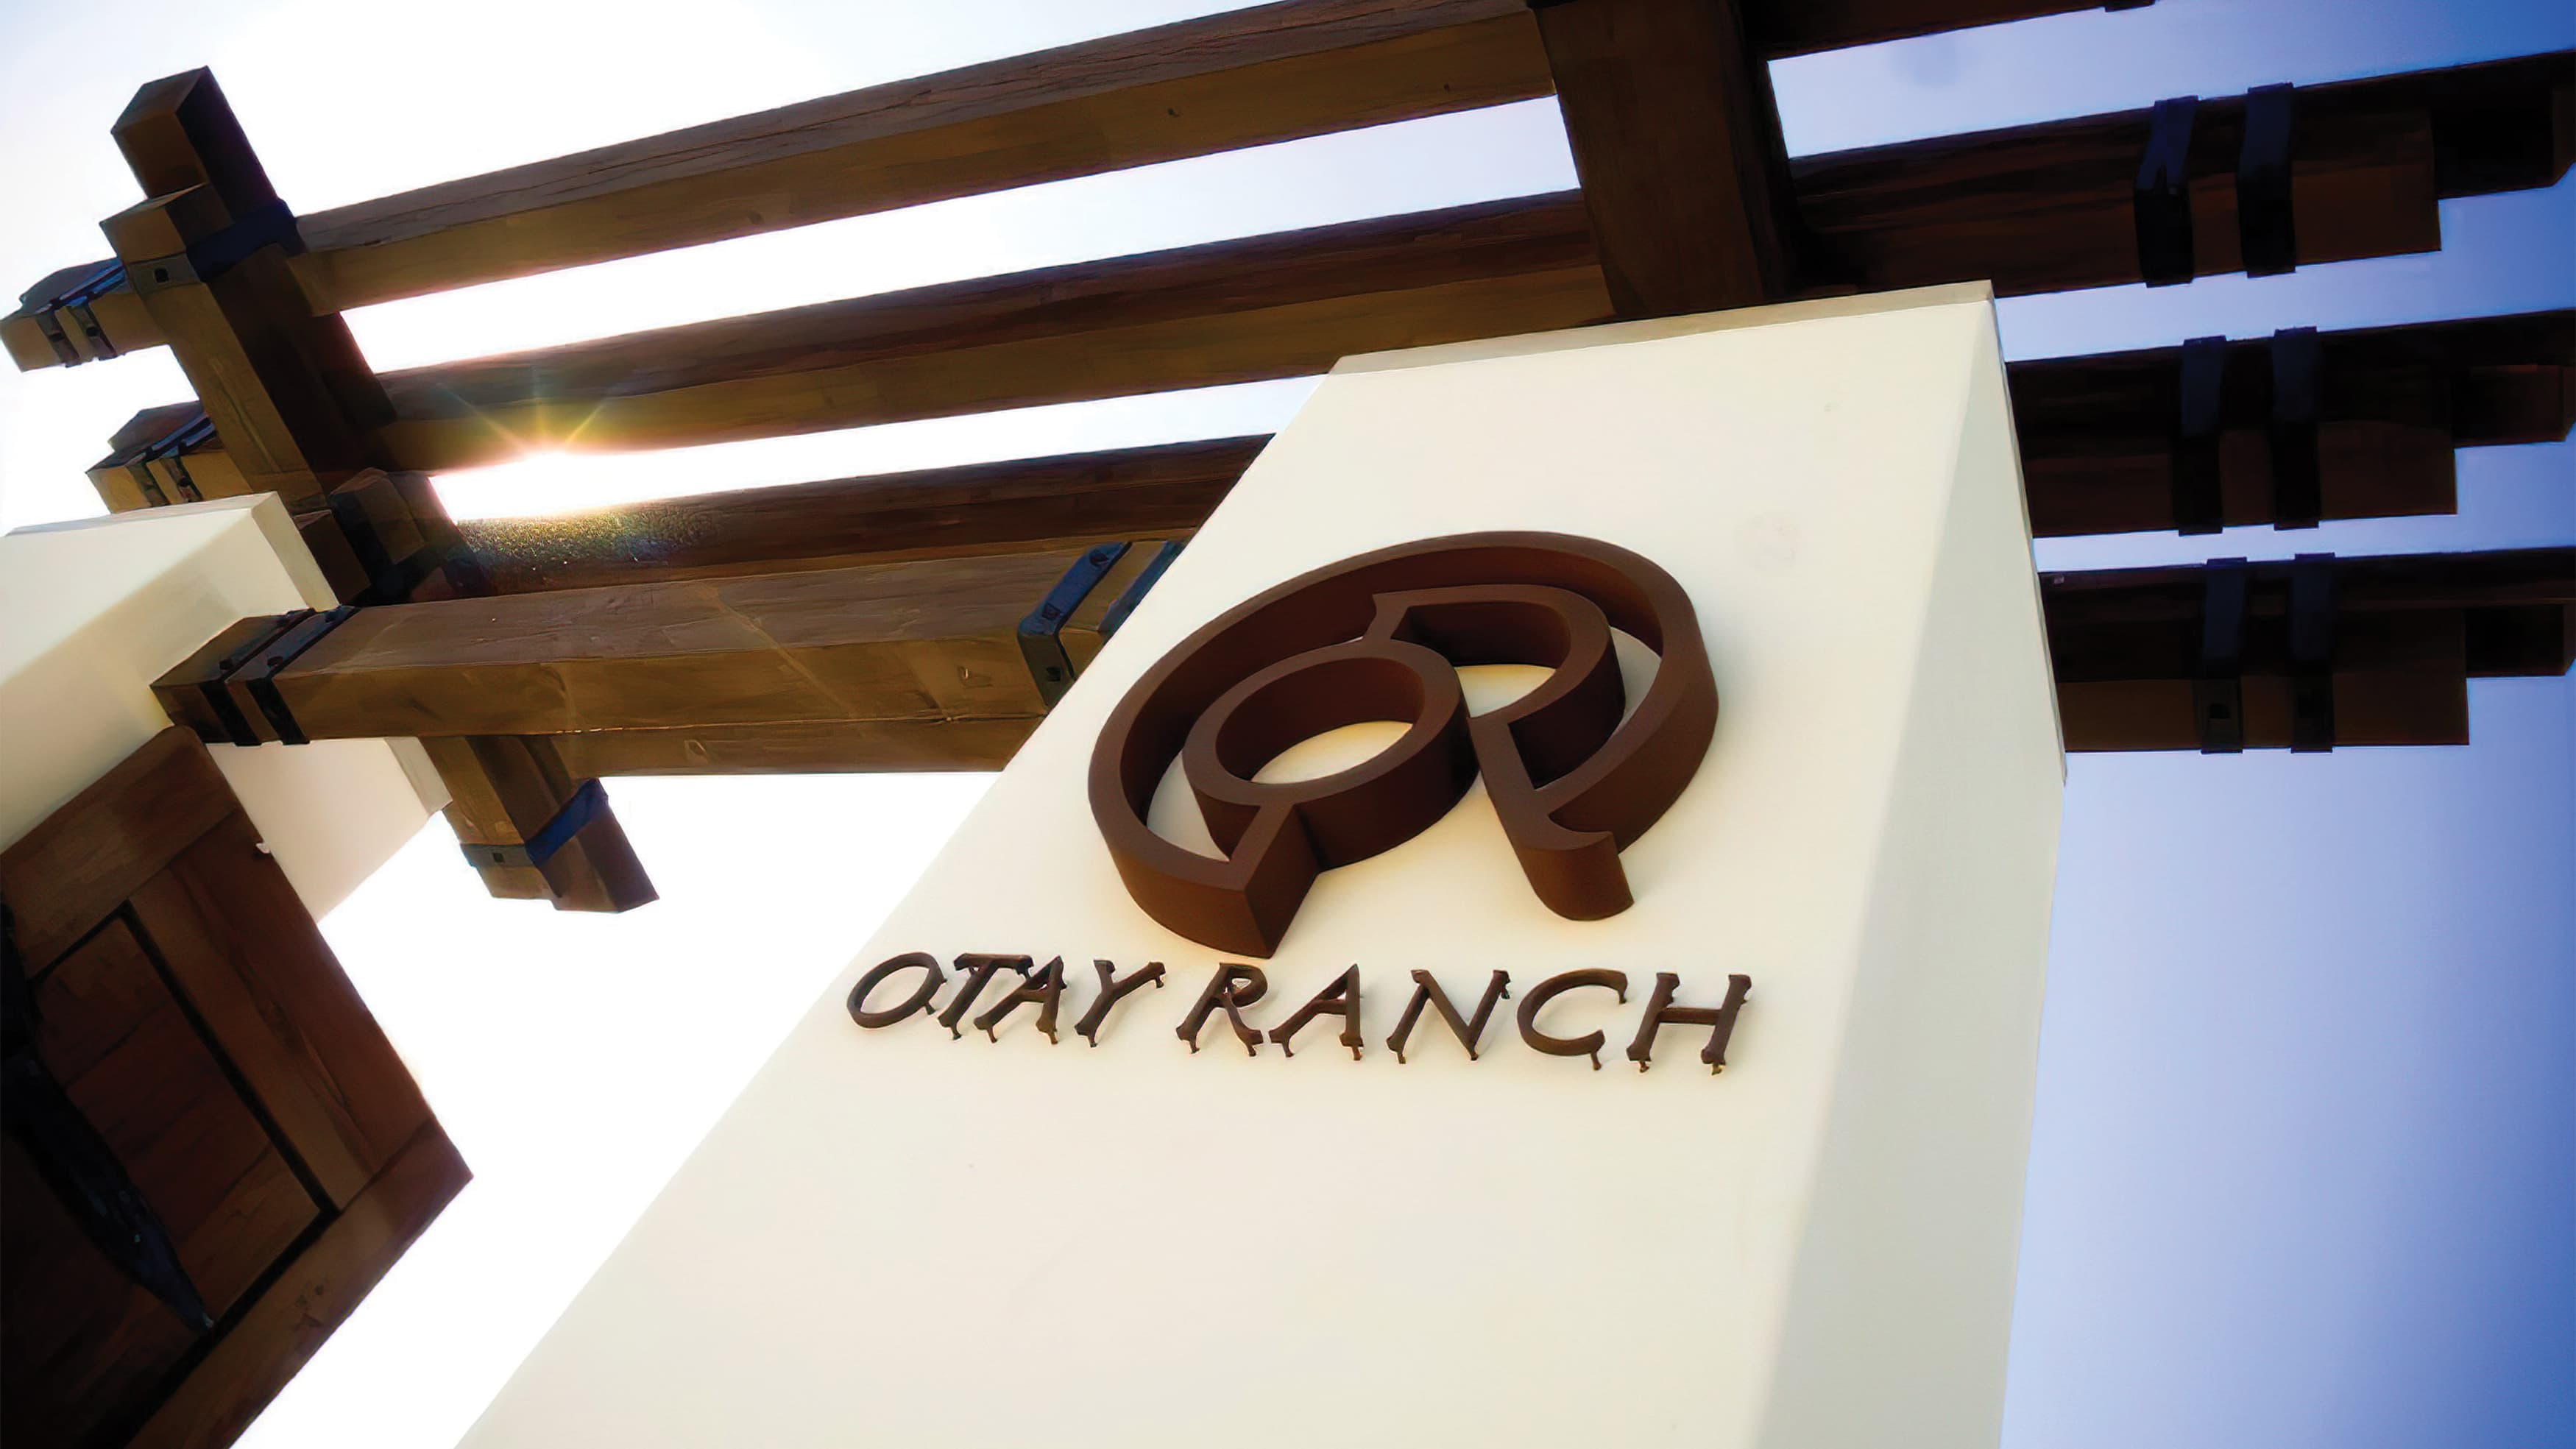 Otay Ranch corten metal identity fastened to Spanish-style column